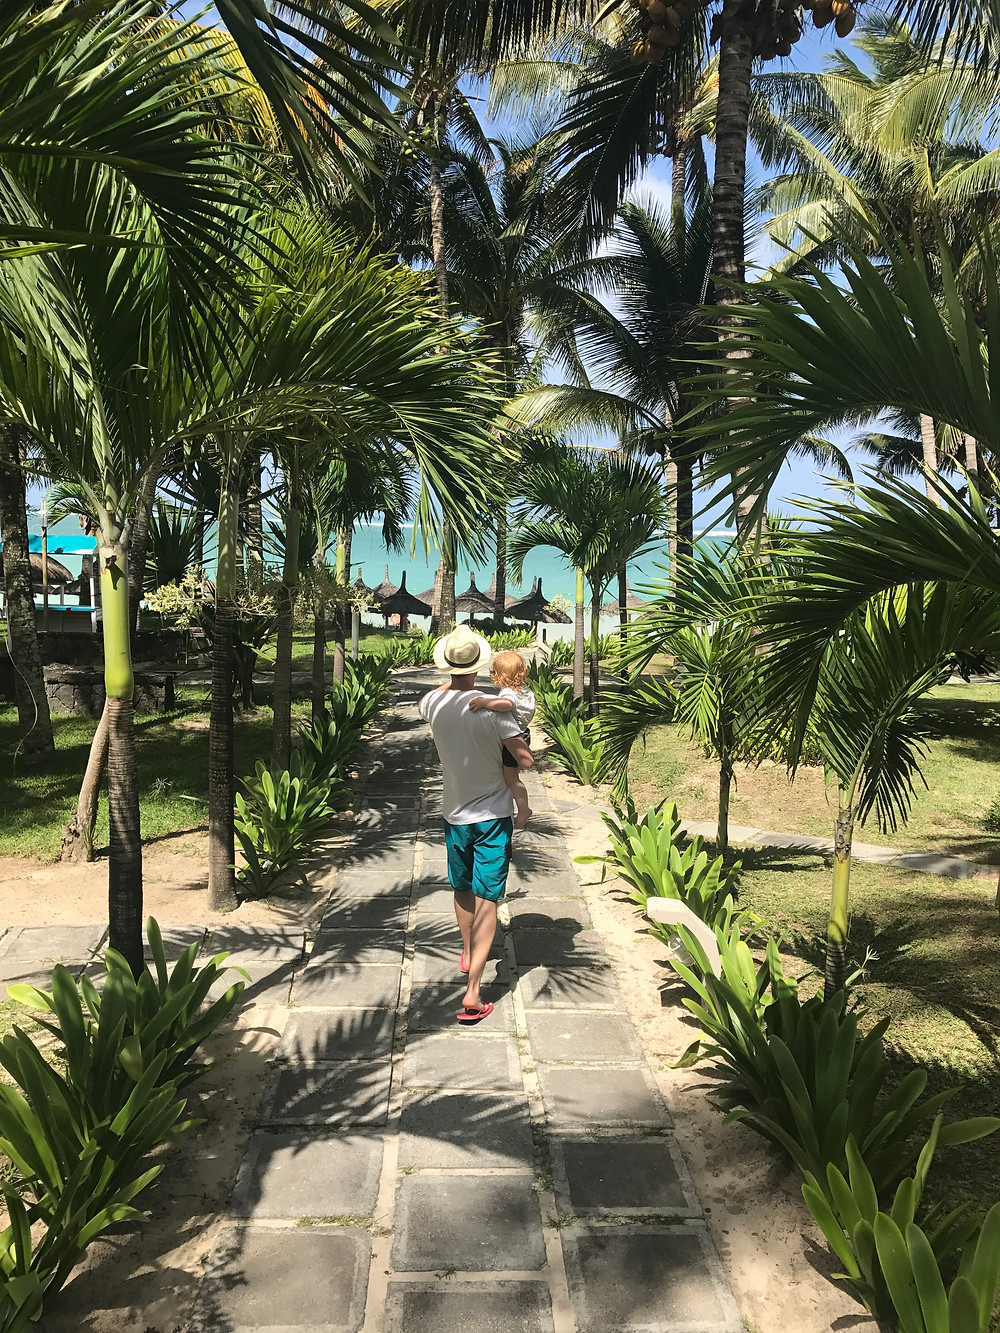 Palm trees, beaches and sunshine in Mauritius